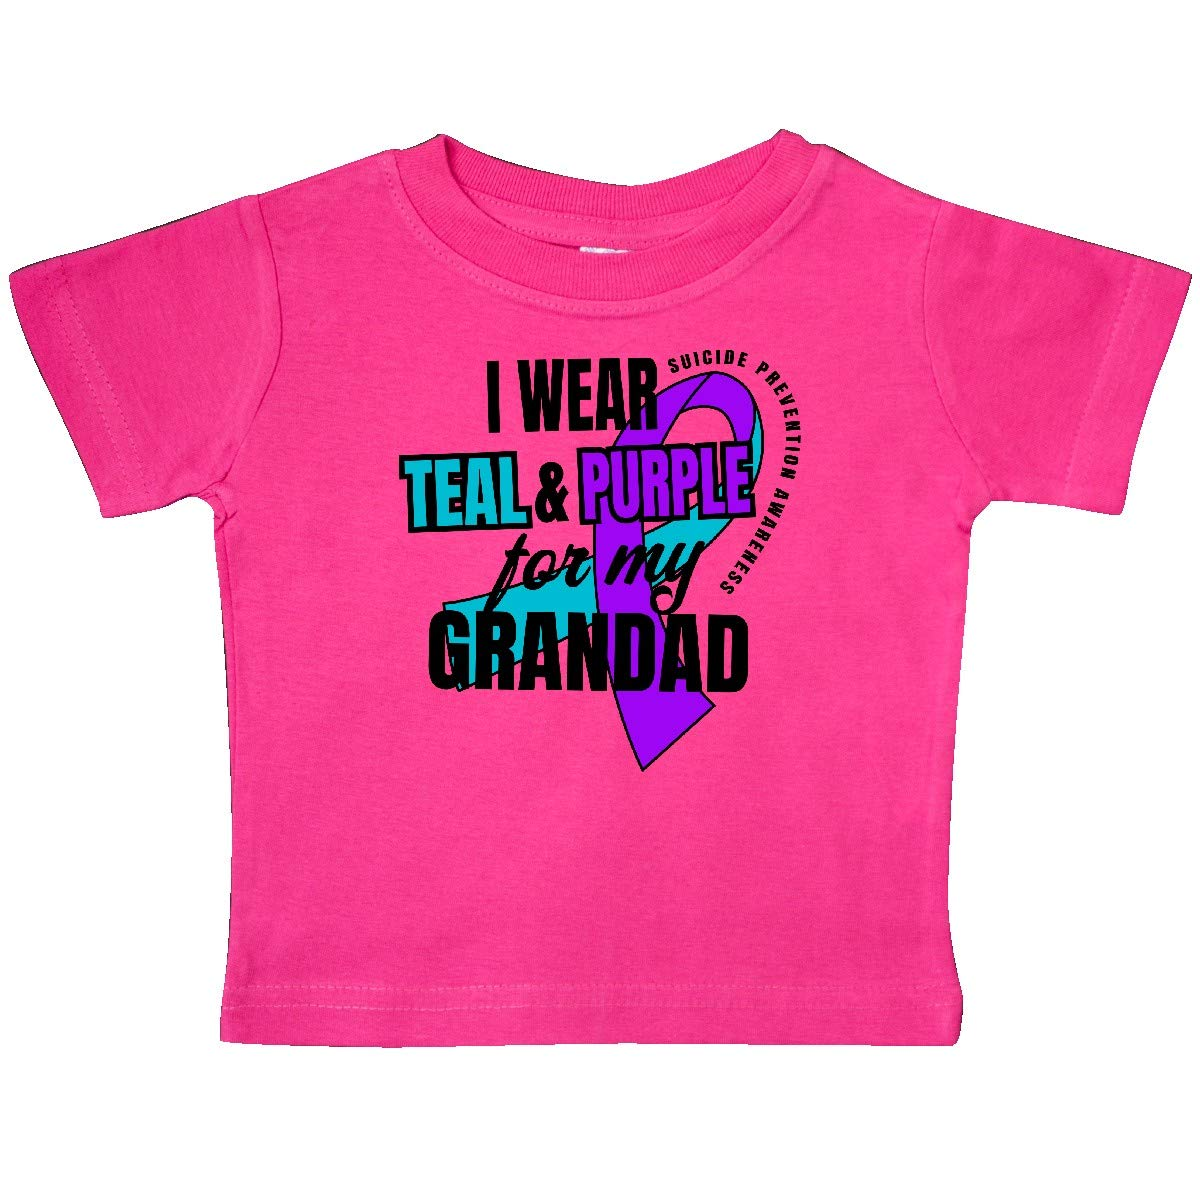 inktastic Suicide Prevention I Wear Teal and Purple for My Grandad Baby T-Shirt